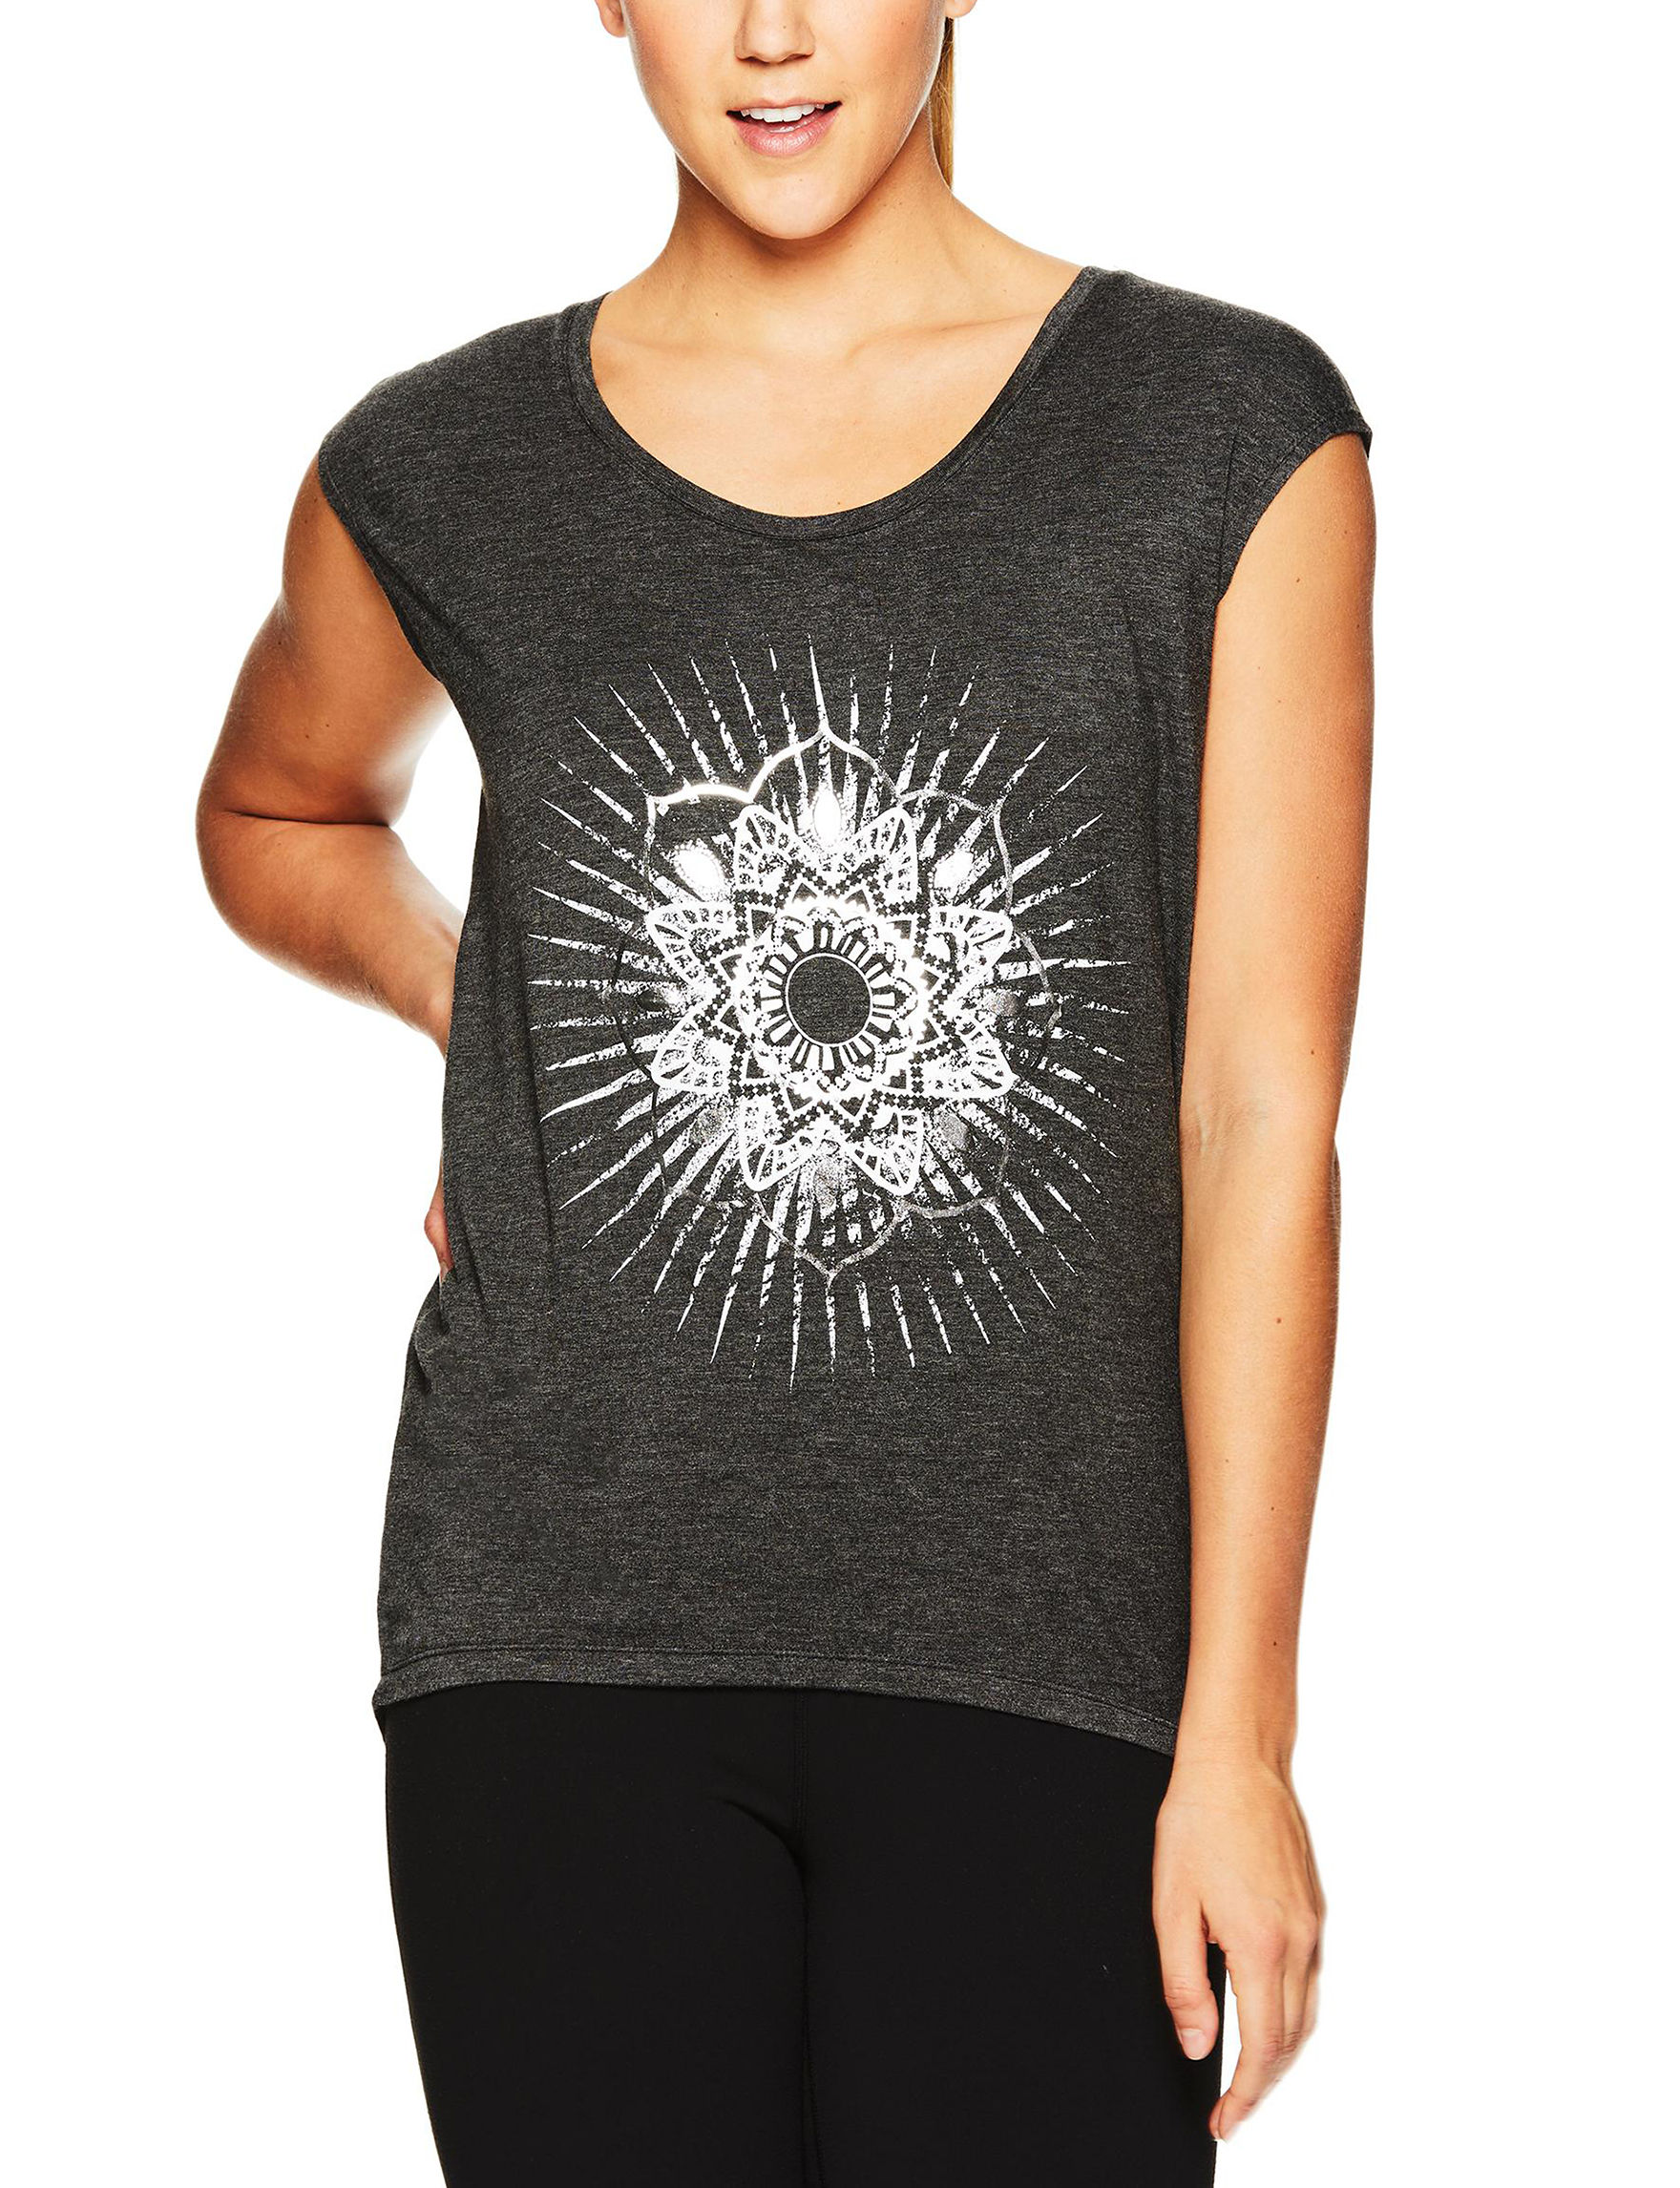 Gaiam Grey Tees & Tanks